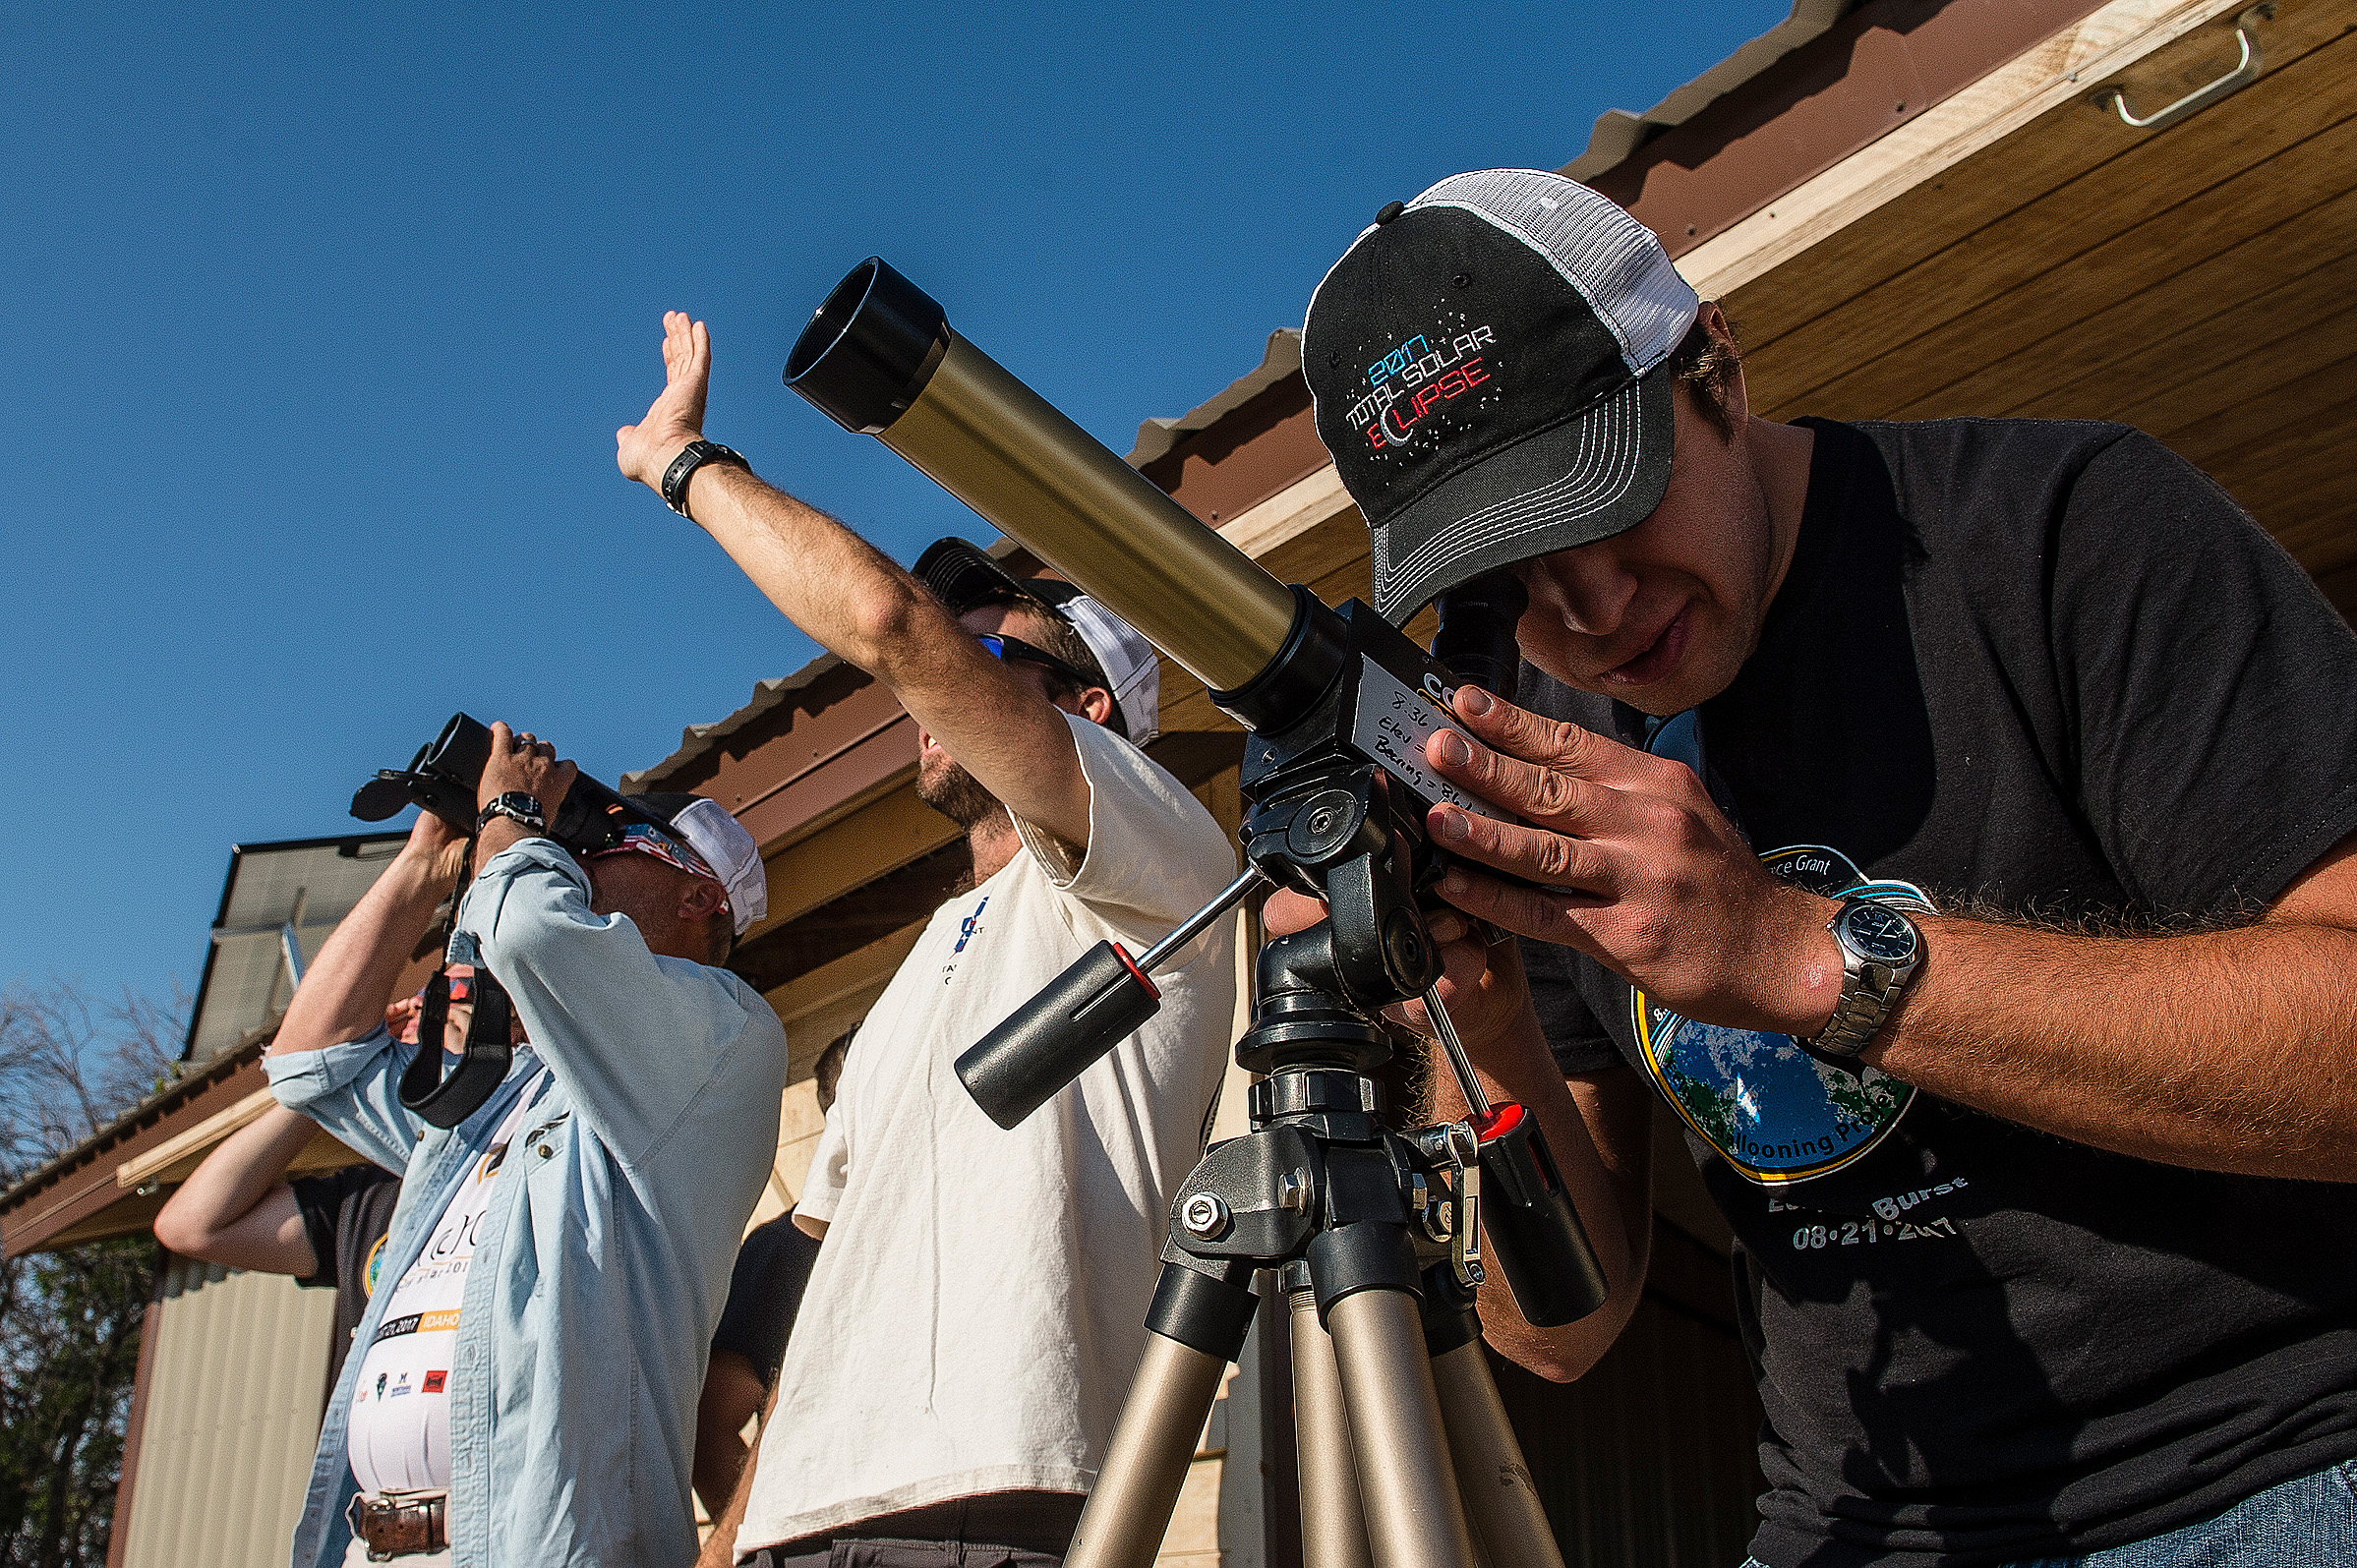 Members of MSU's balloon launch team watch the sun through solar scopes.